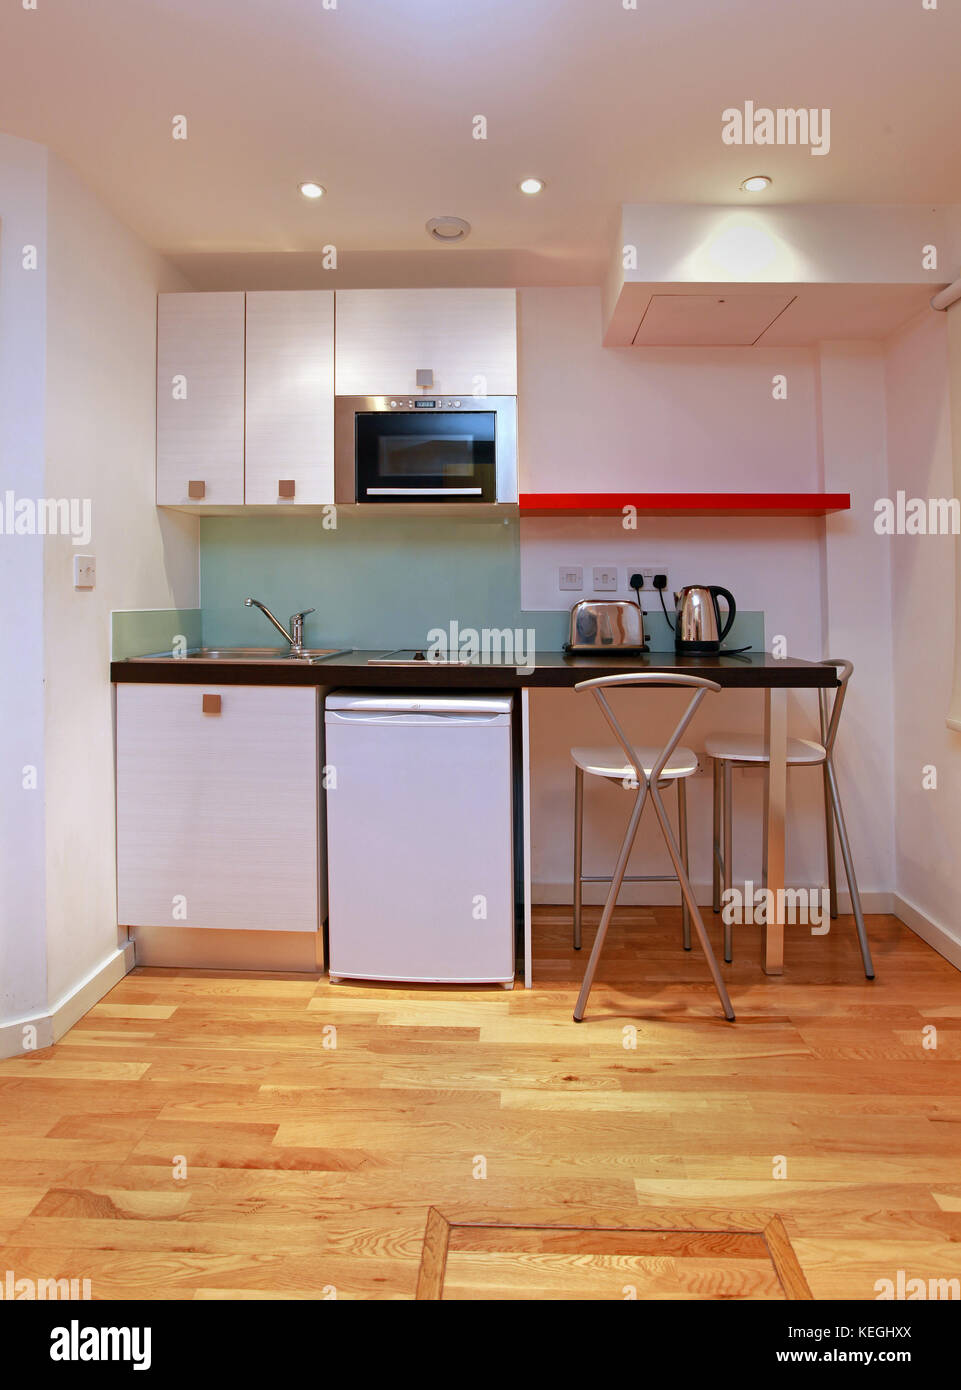 Small Modern Kitchen In Tiny Studio Apartment Stock Photo Alamy